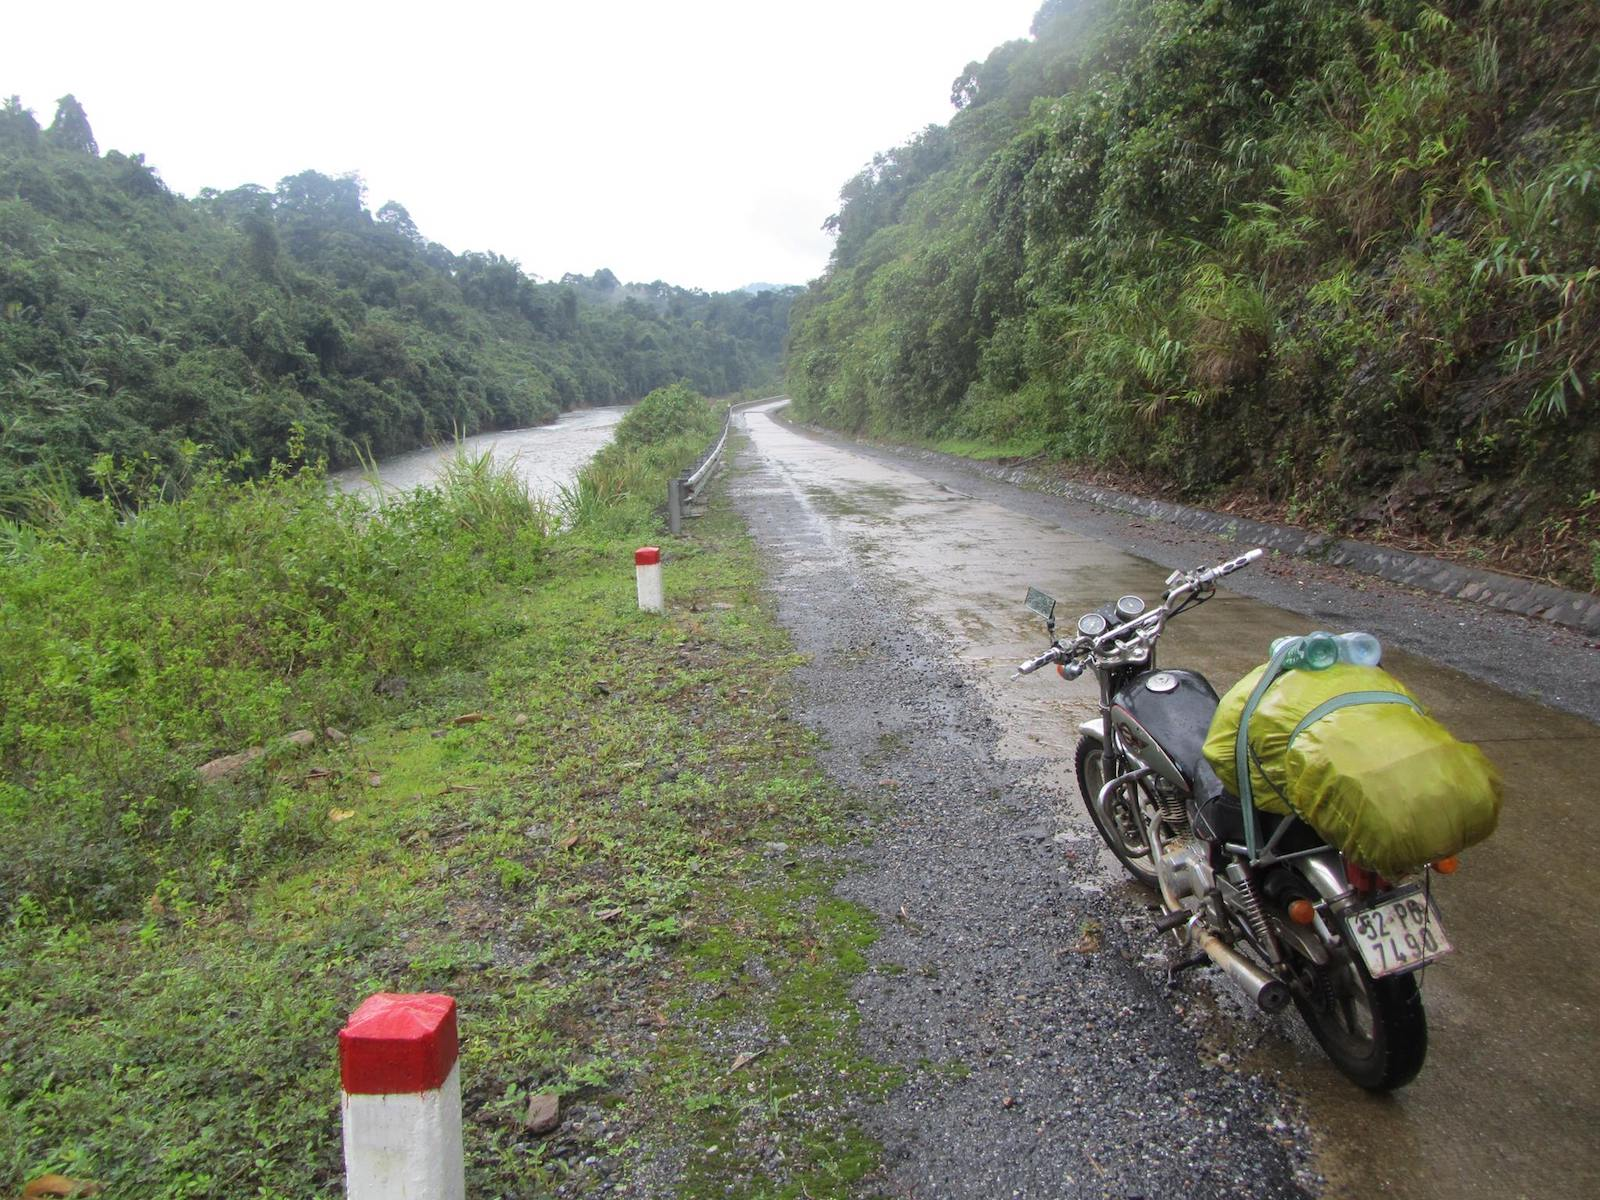 Image of a motorbike on a muddy road in Vietnam